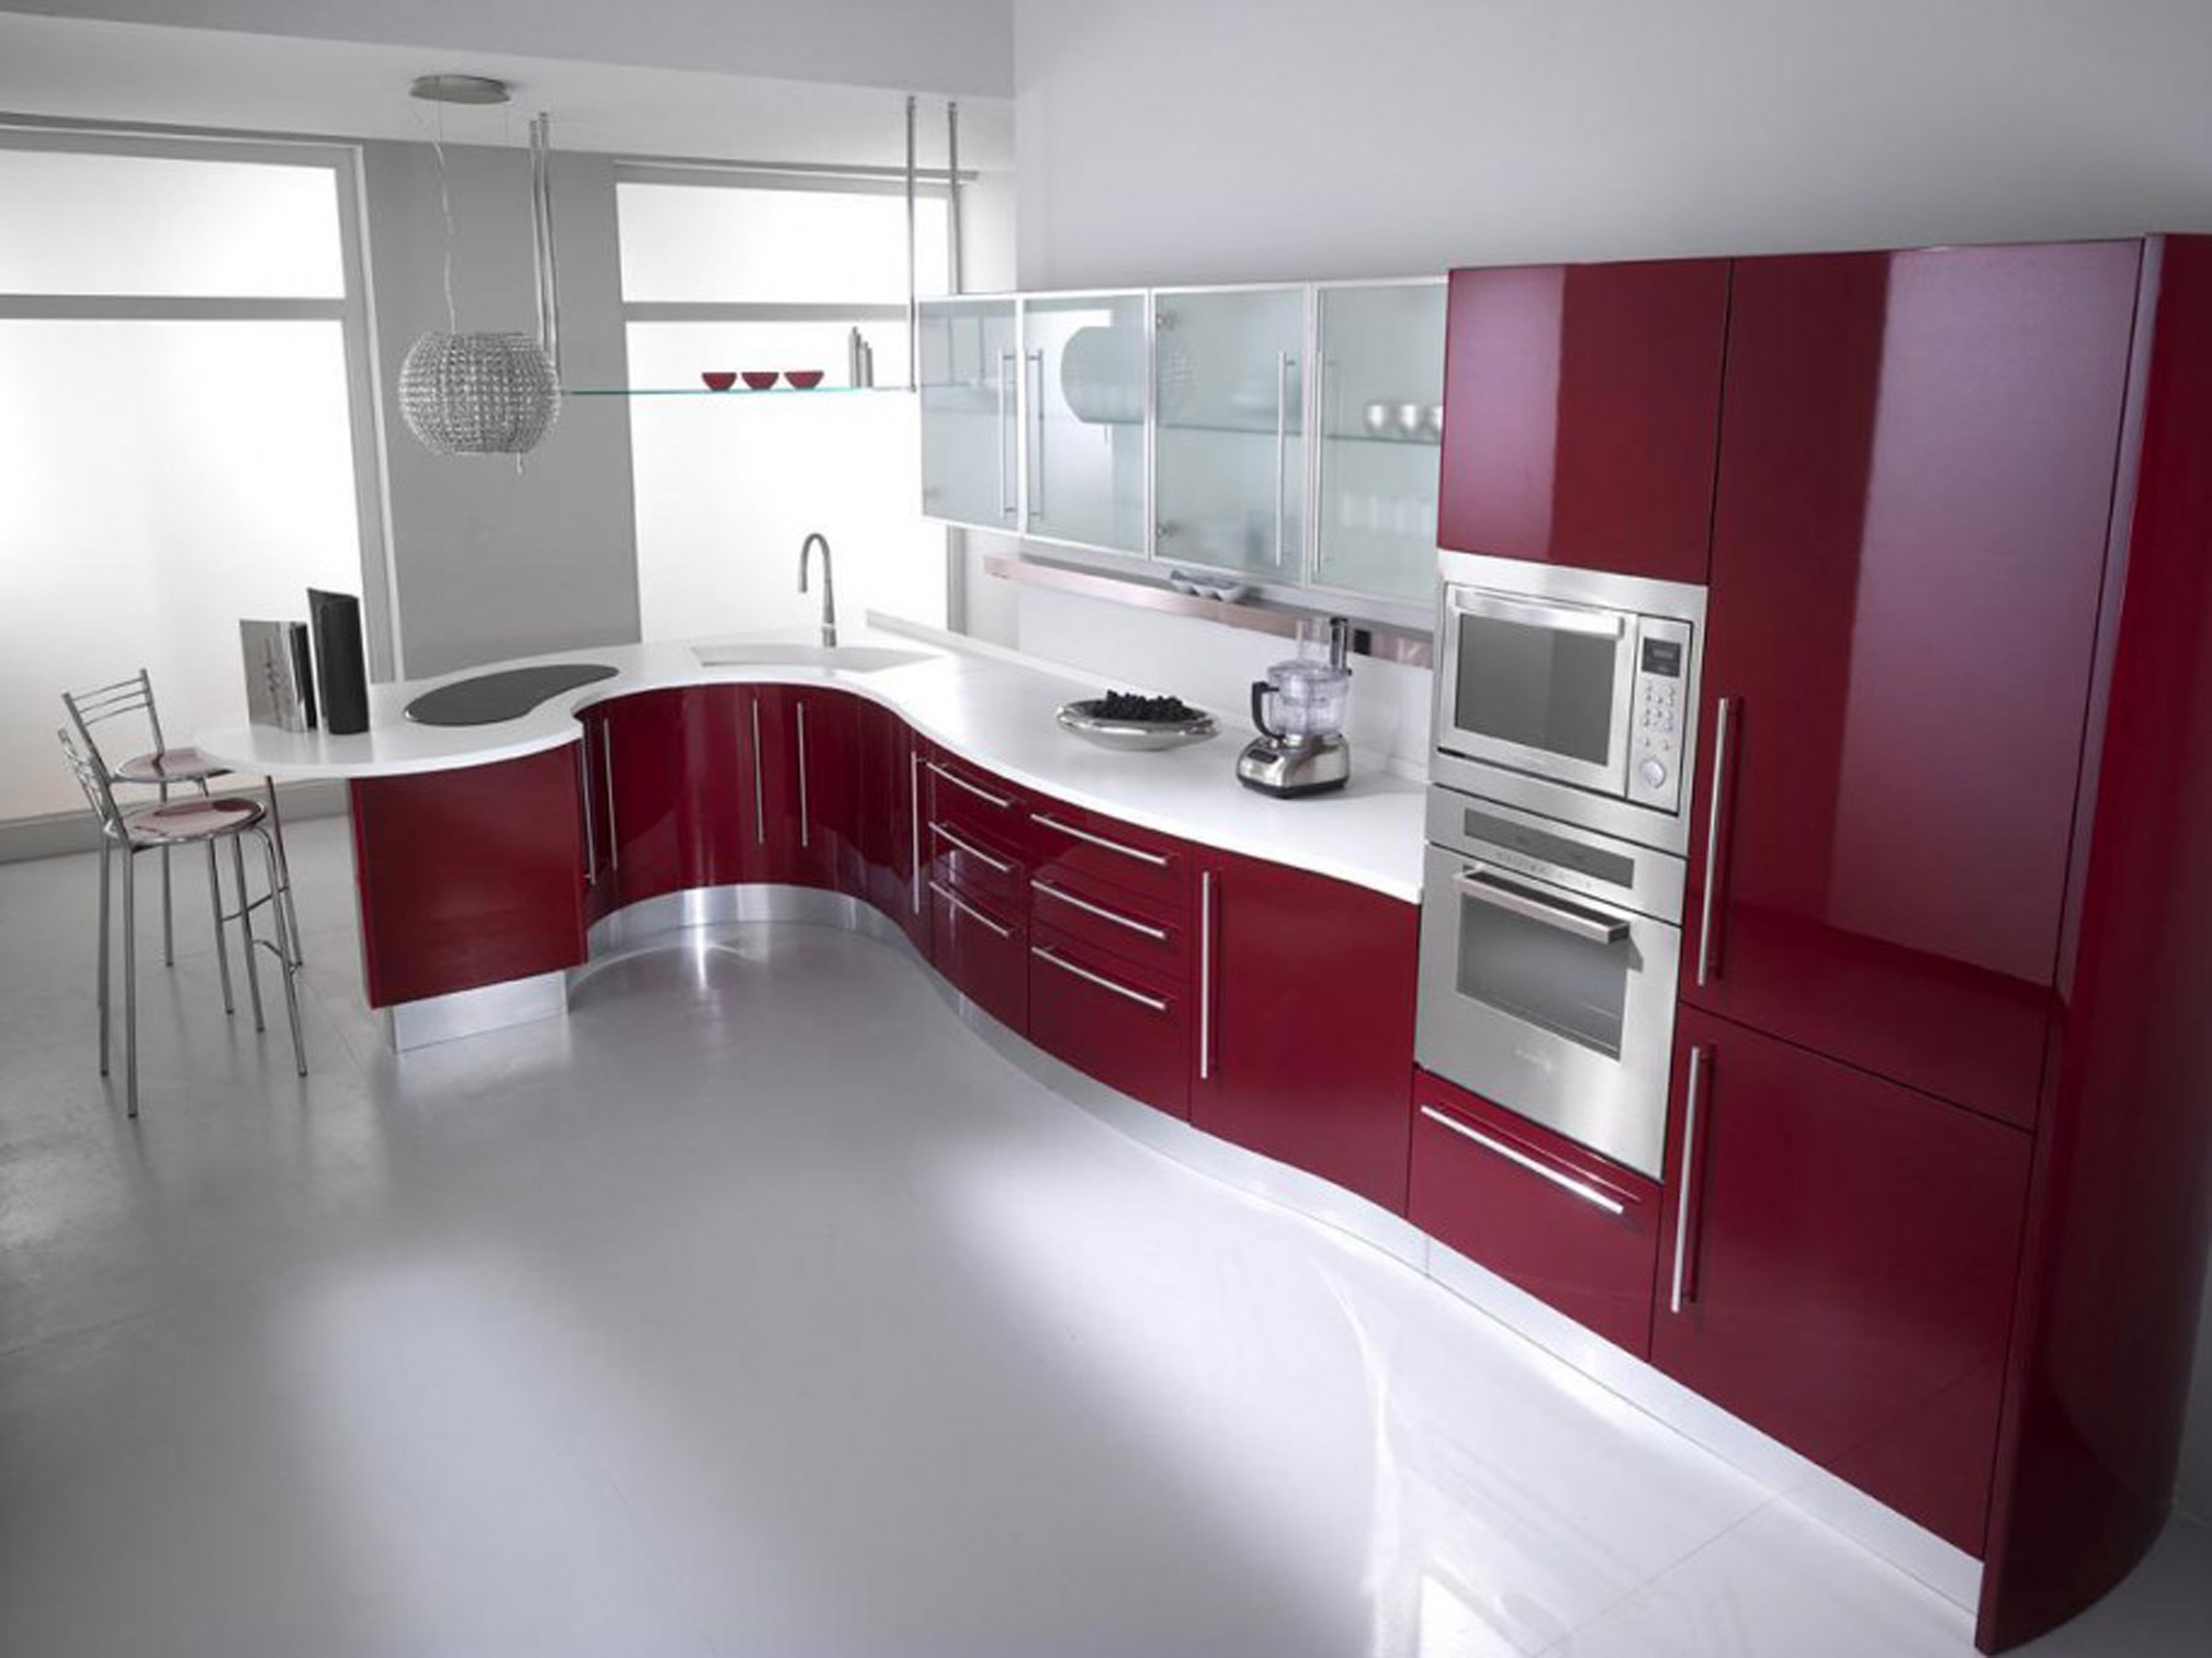 Modern Kitchen Designs With Natty Concept (View 7 of 31)